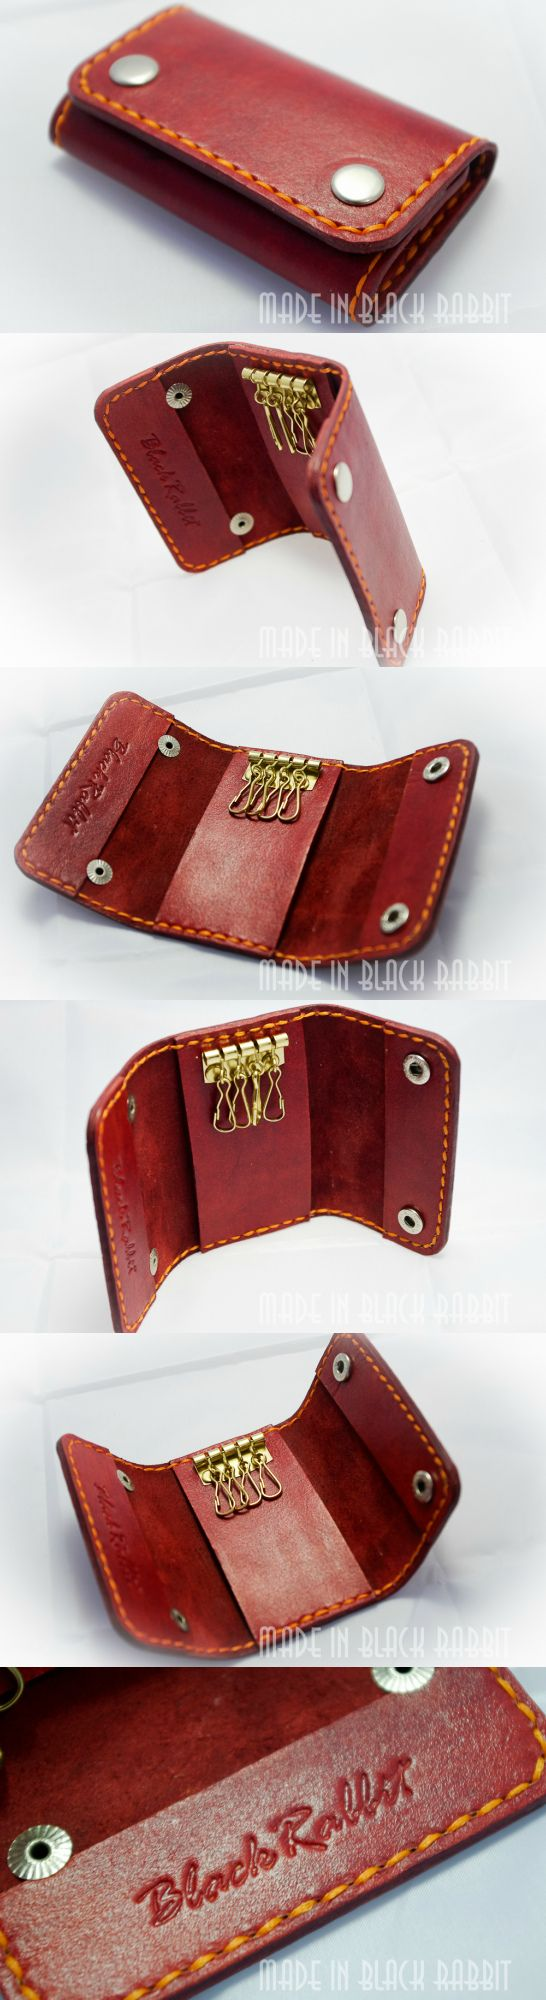 Housekeeper pocket for storing keys made of genuine leather. Leather vegetable tanned. The color can be any. Hand painting and sewing. On the two buttons. Very handy accessory, you can choose the color of the bag or gloves. A good and useful gift.